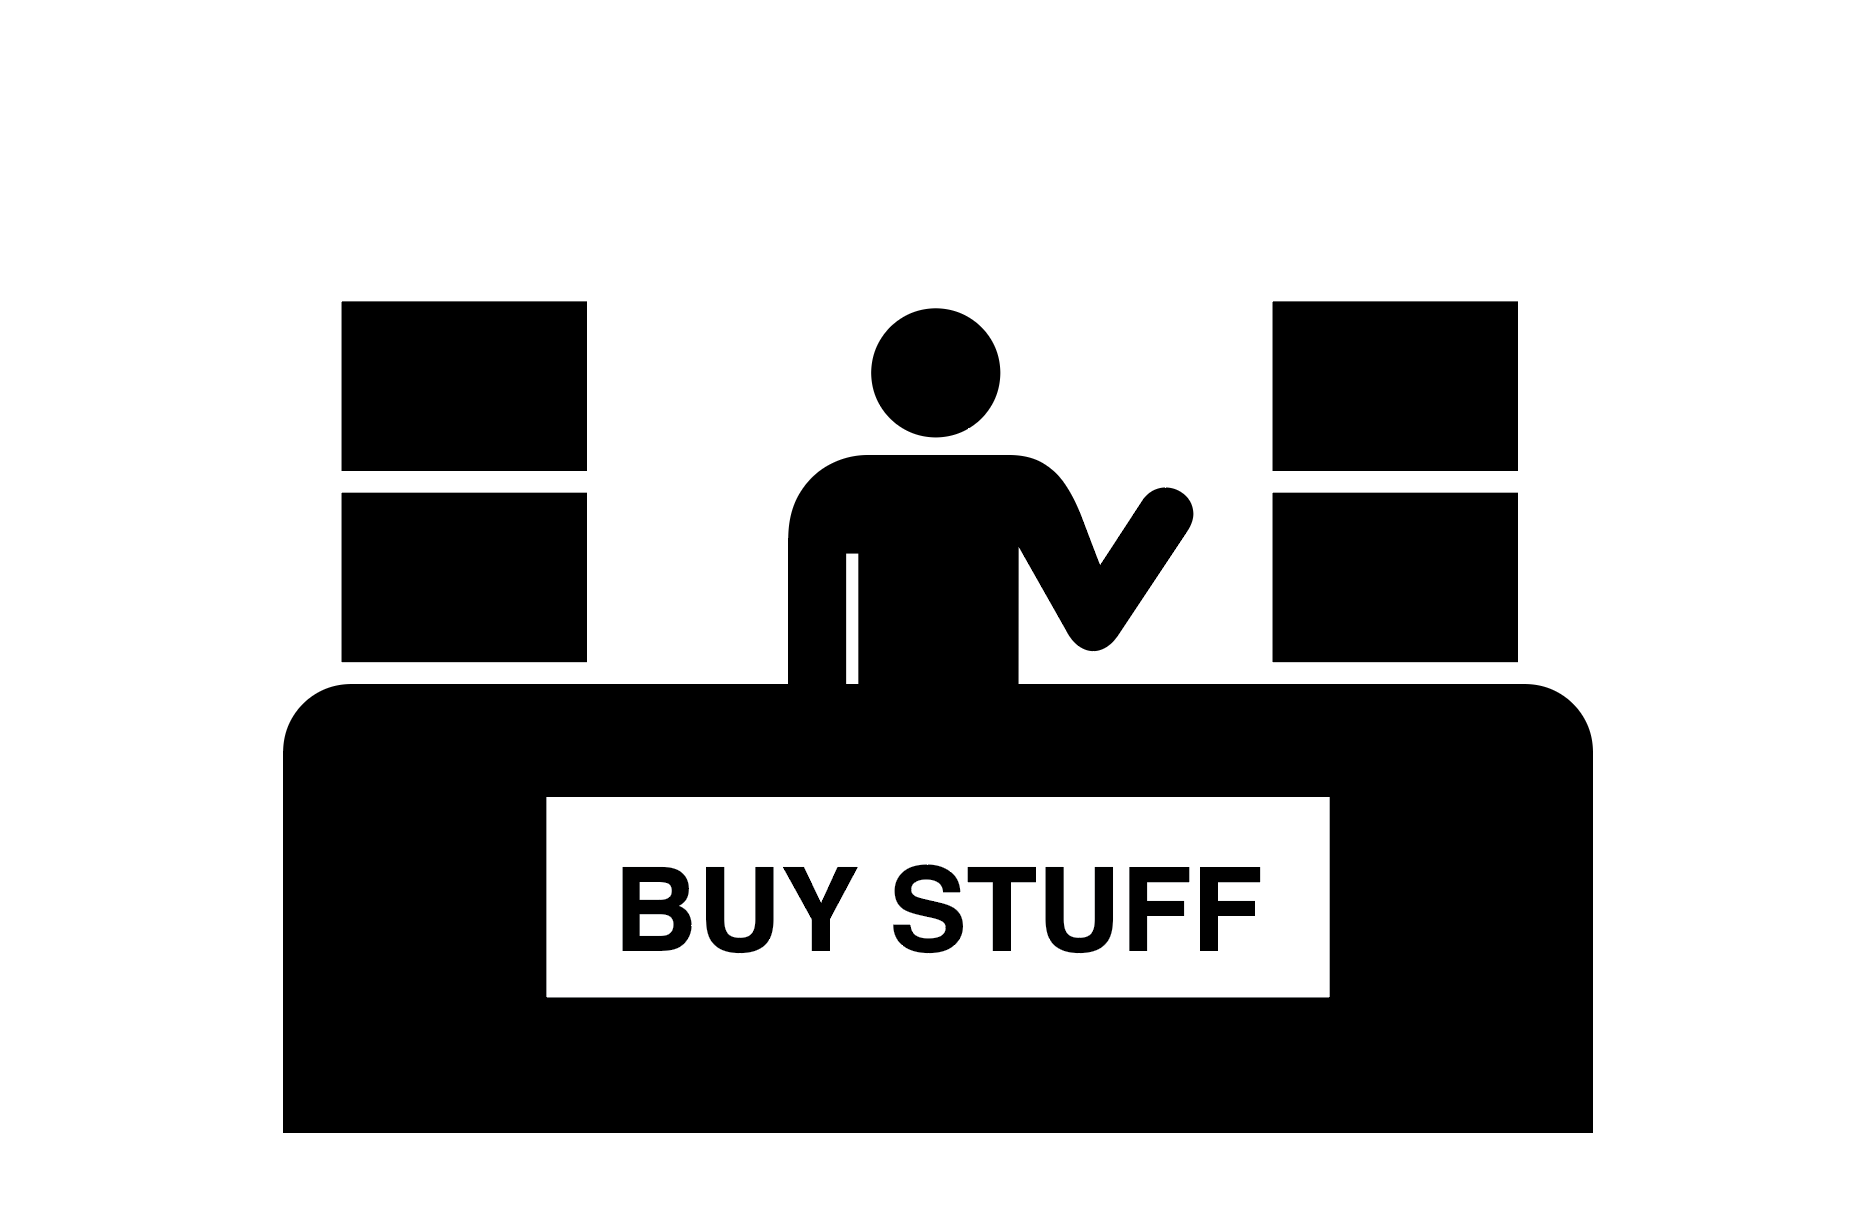 BUY STUFF or... not?